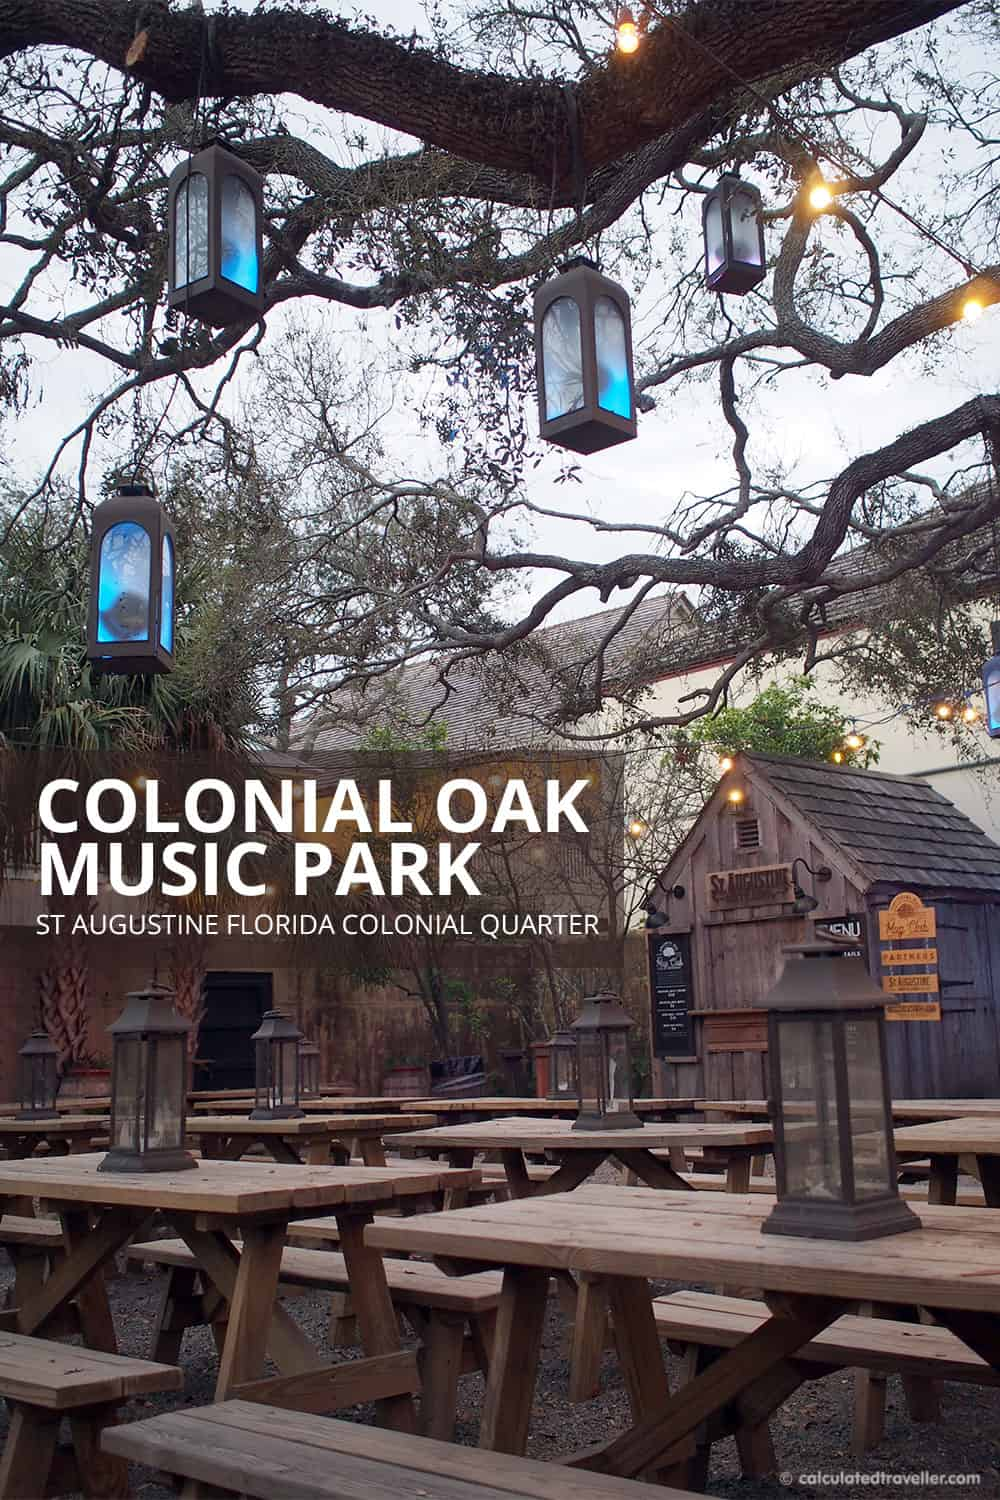 A Traveller's Guide to St Augustine Florida - History and Fun. Colonial Oak Music Park in Old Town St Augustine Florida is the place to go for free music and entertainment.